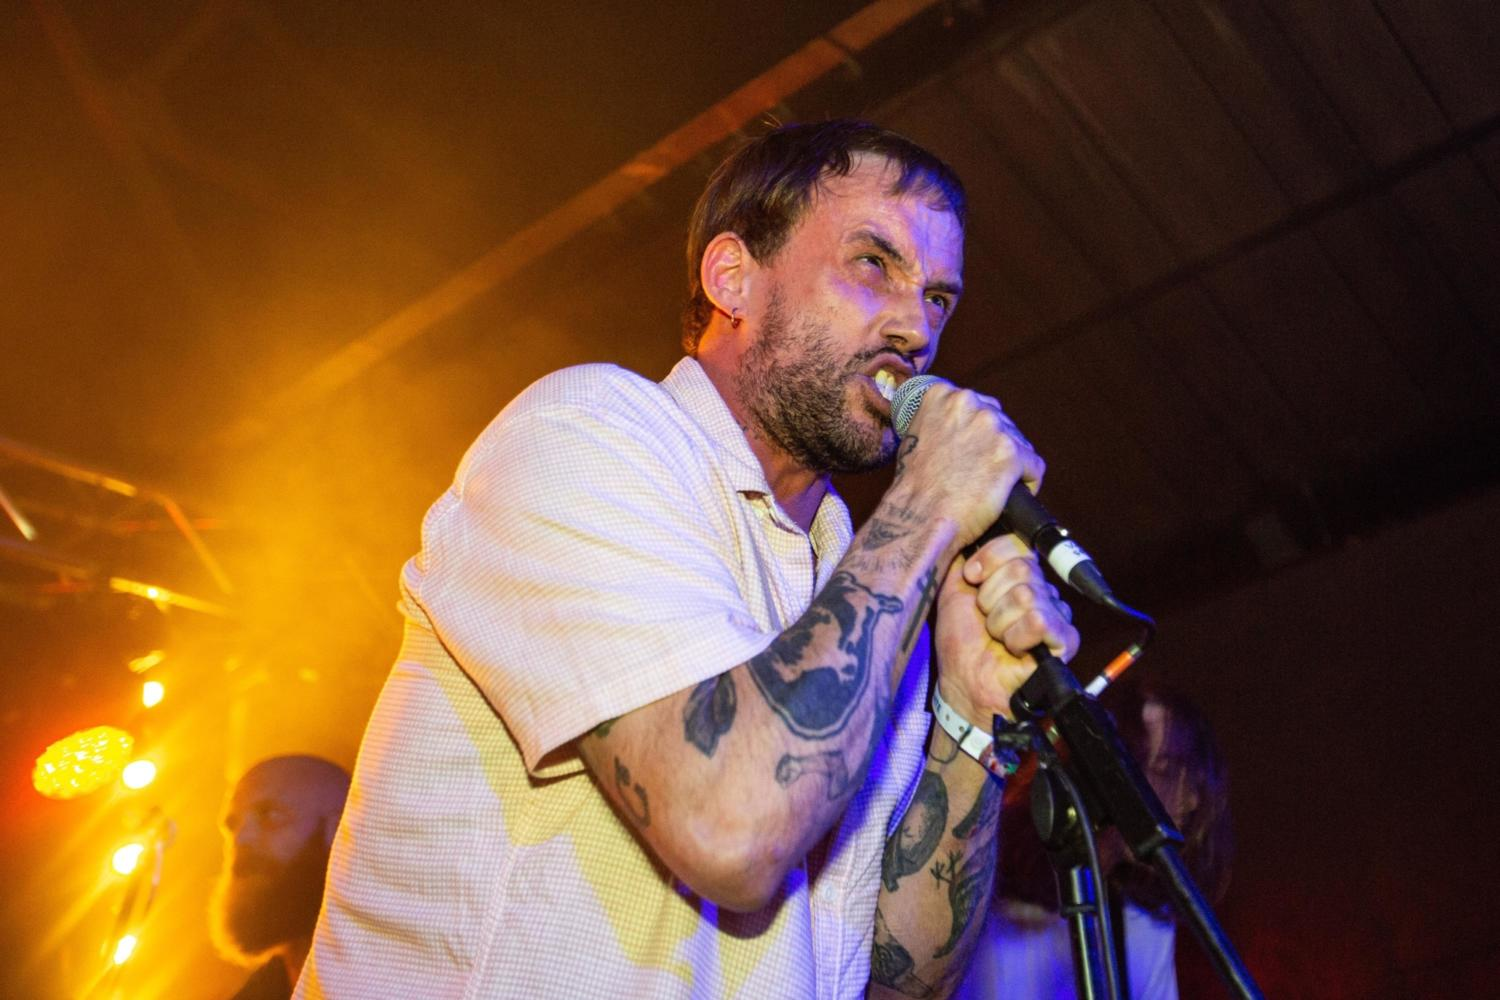 IDLES, Ghostpoet & loads more to play the DIY stage at Electric Fields 2018